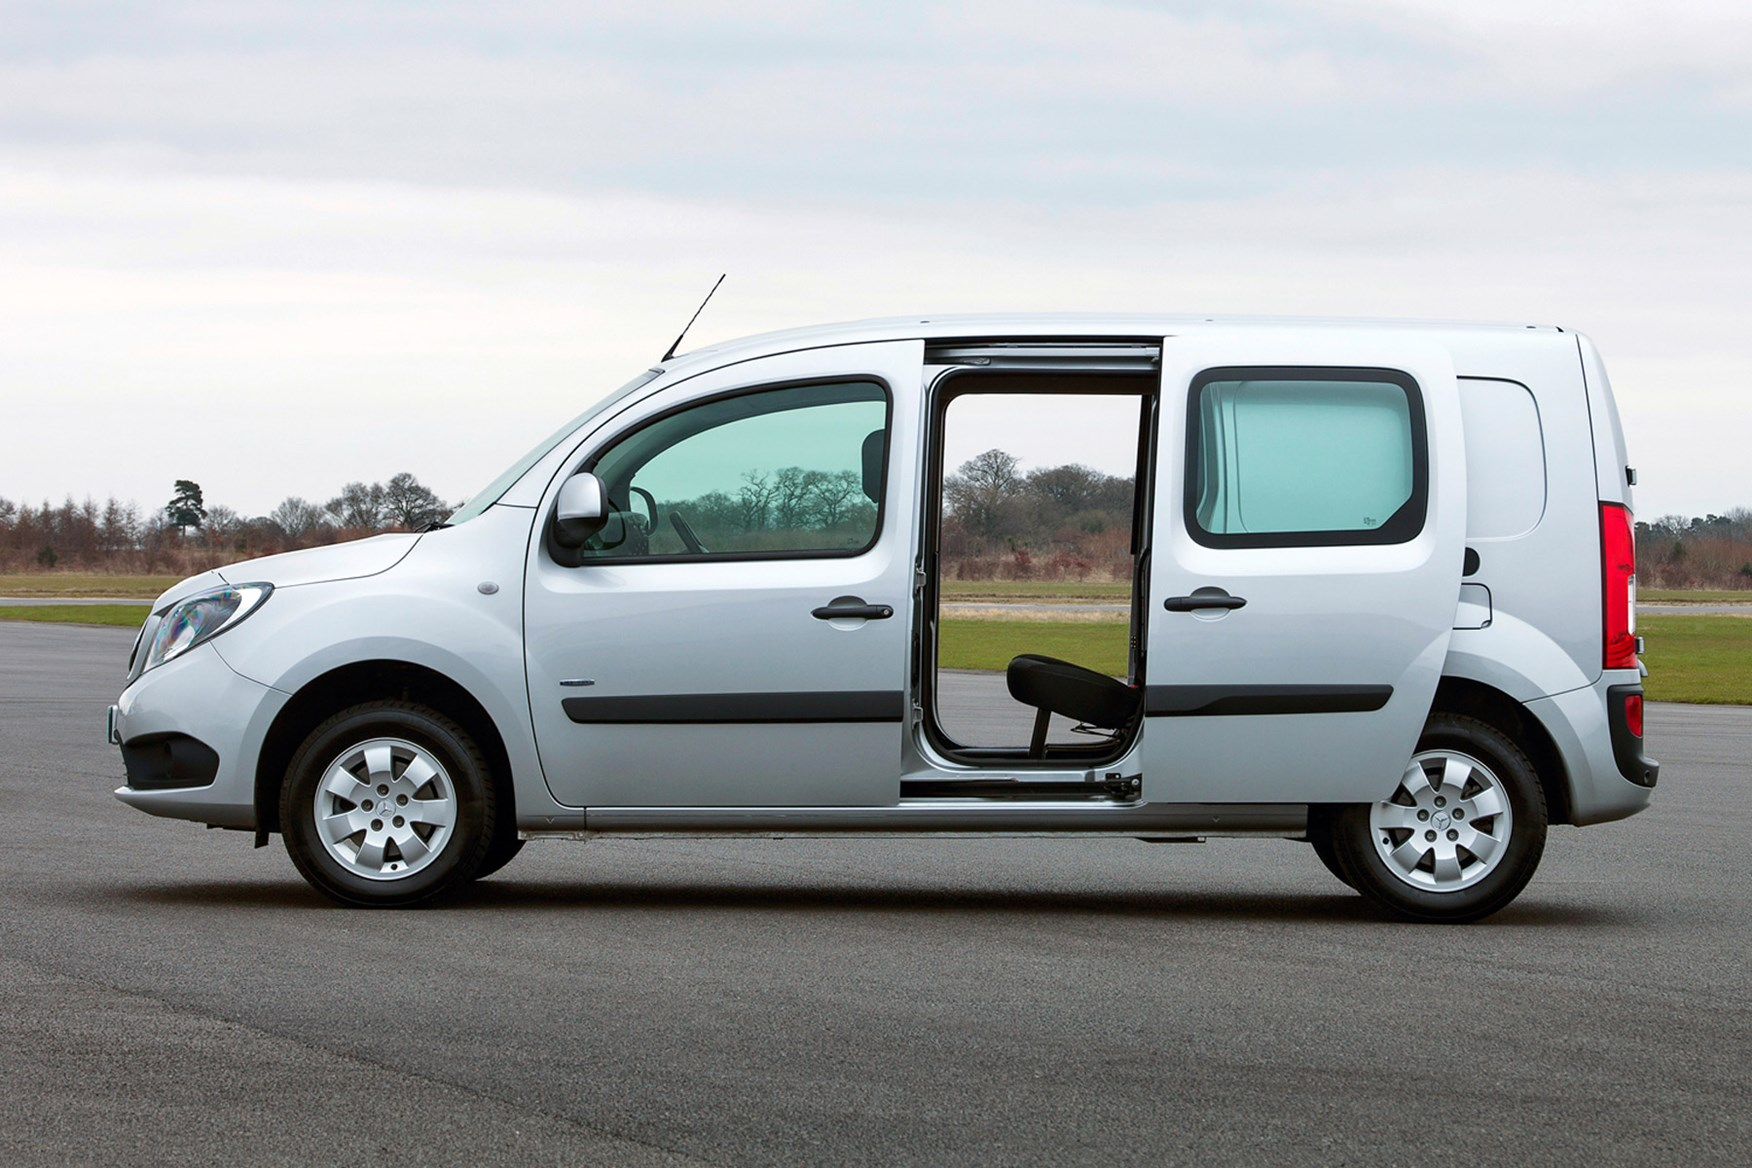 Mercedes-Benz Citan full review on Parkers Vans - load area access